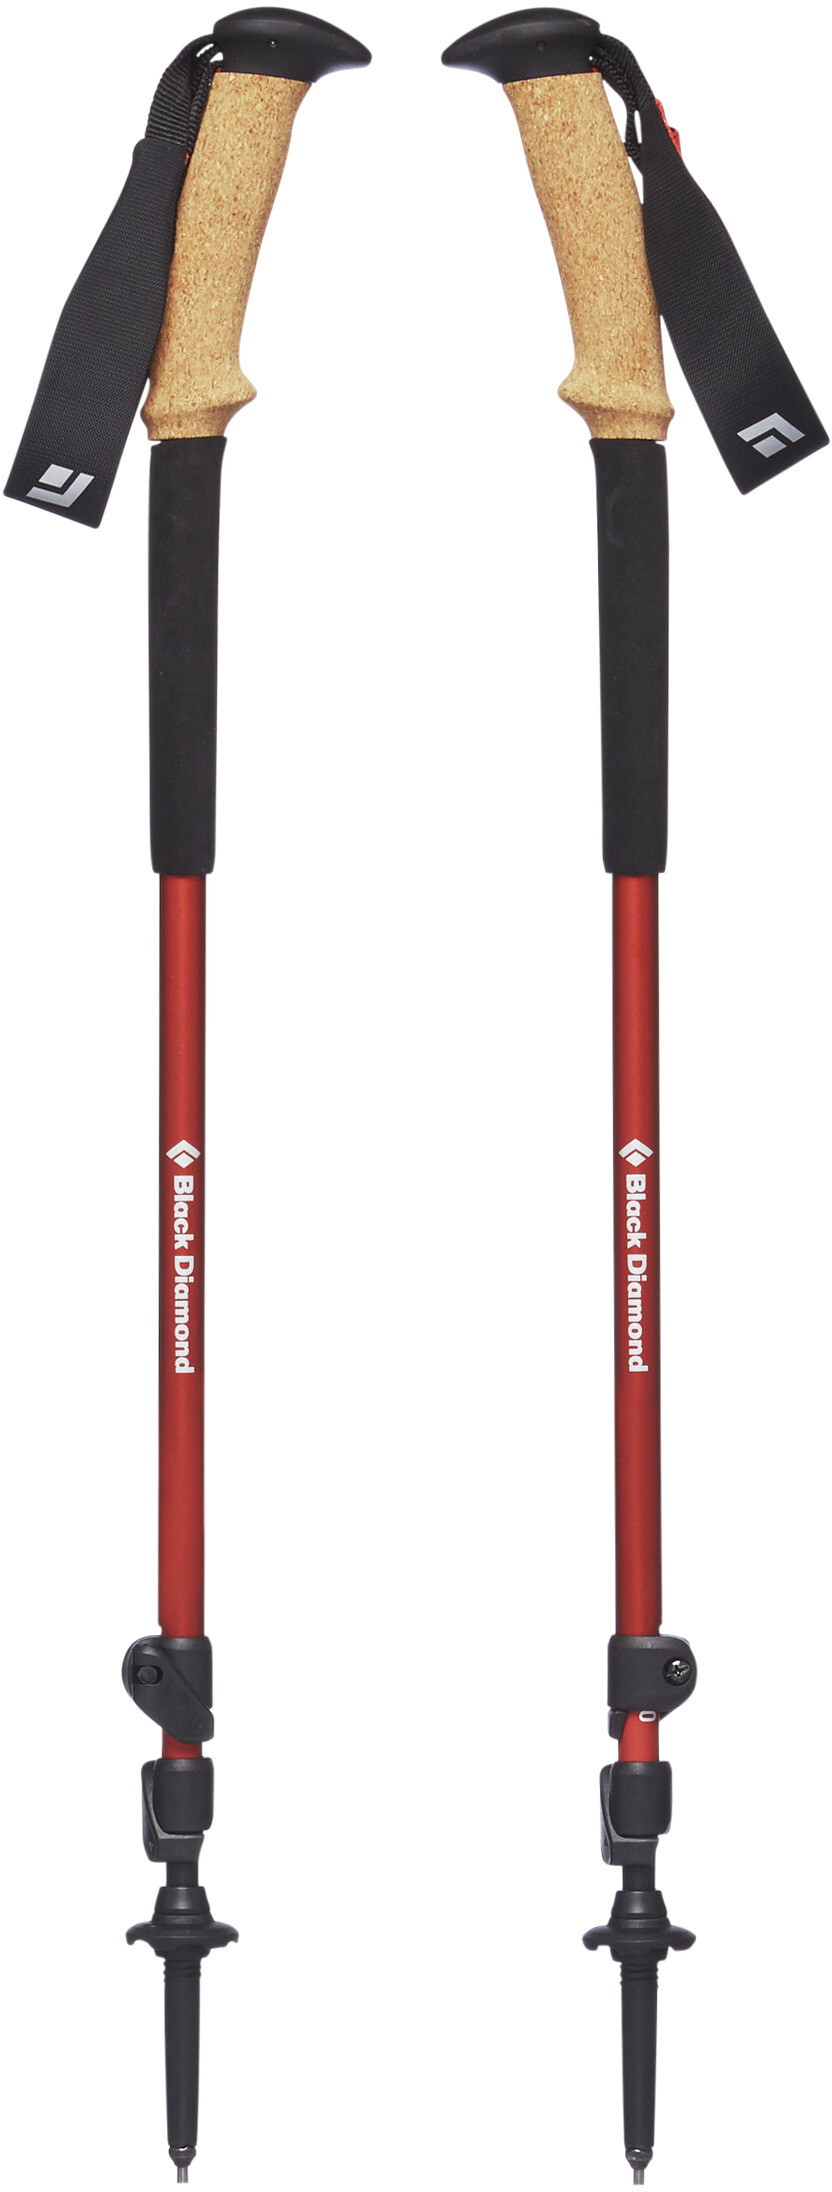 Black Diamond Trail Ergo Cork Trekking Poles Picante